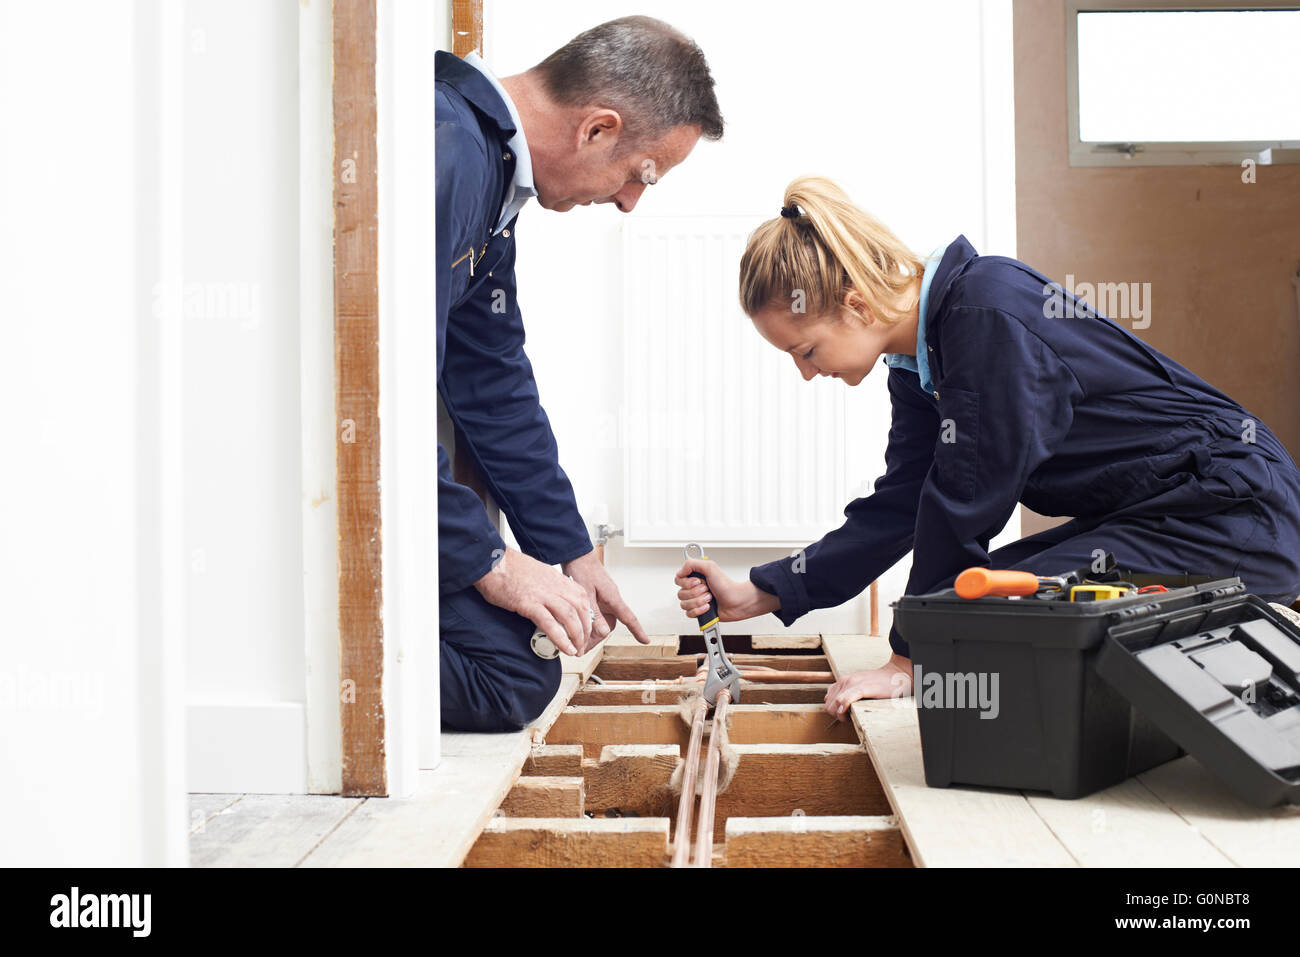 Plumber And Apprentice Fitting Central Heating - Stock Image